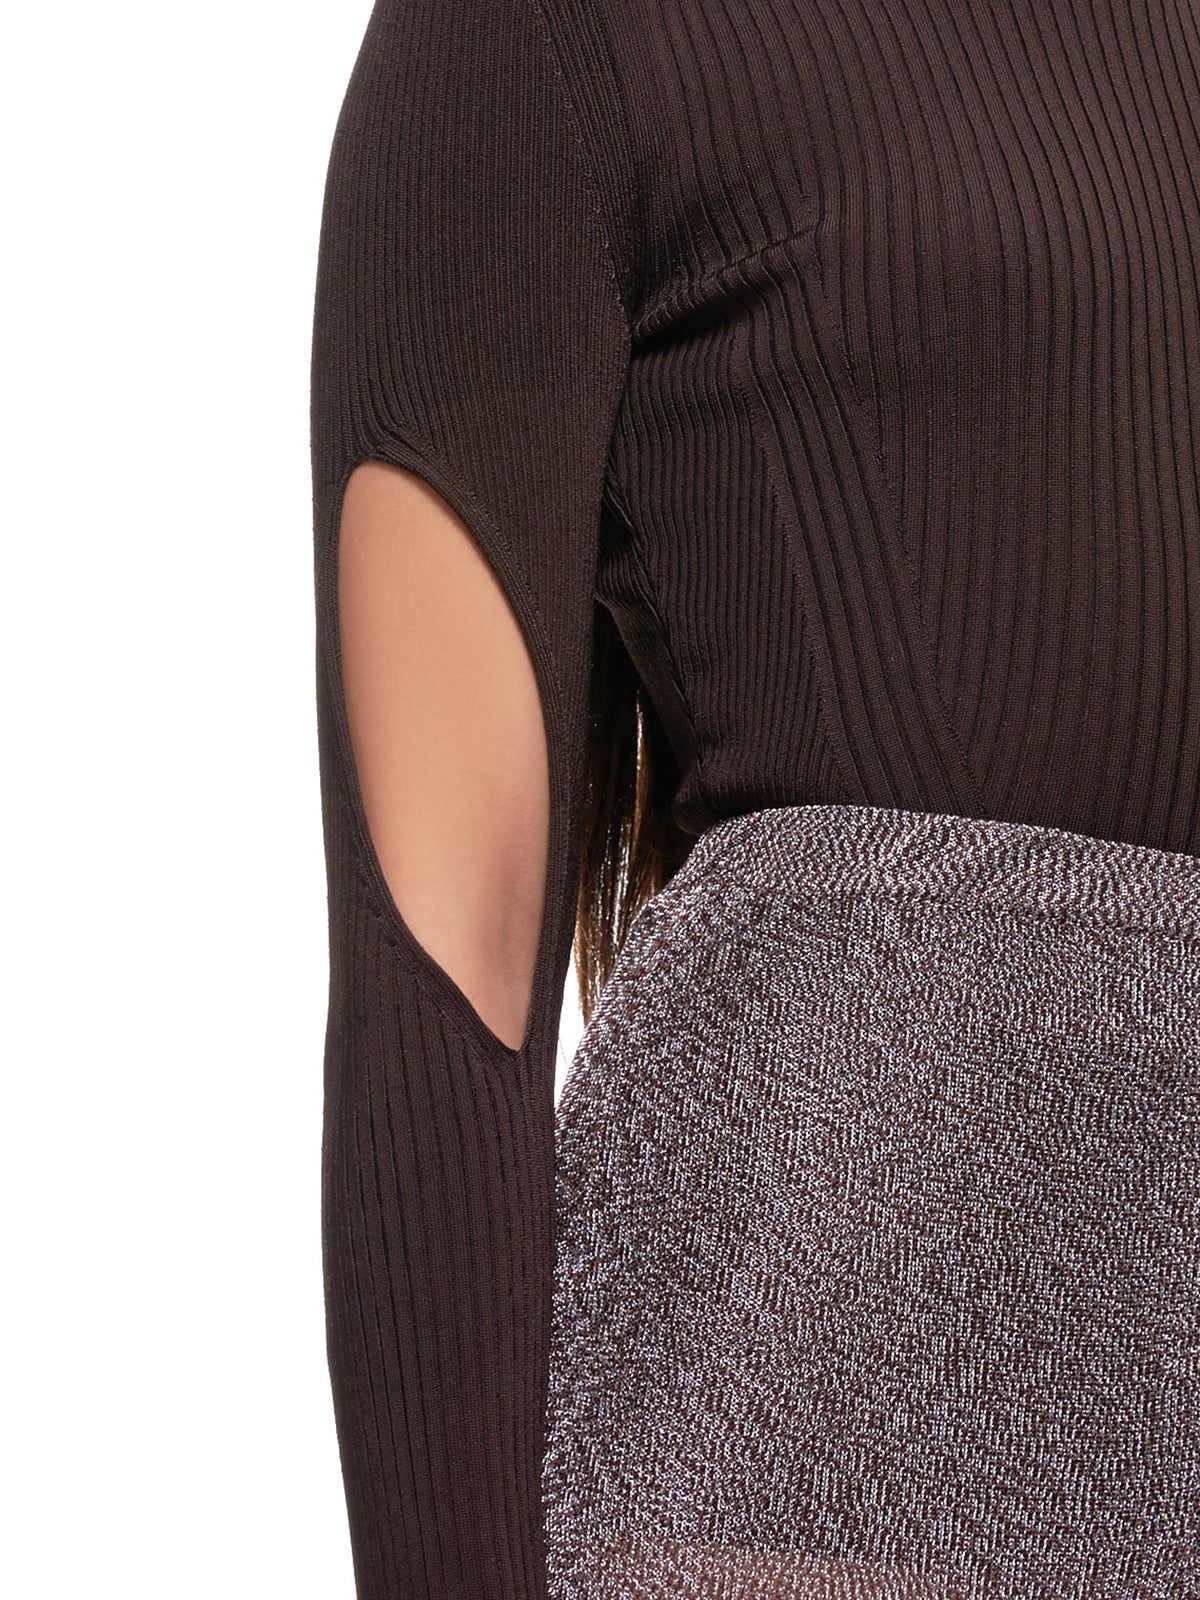 Mugler Turtleneck | H.Lorenzo - detail 2